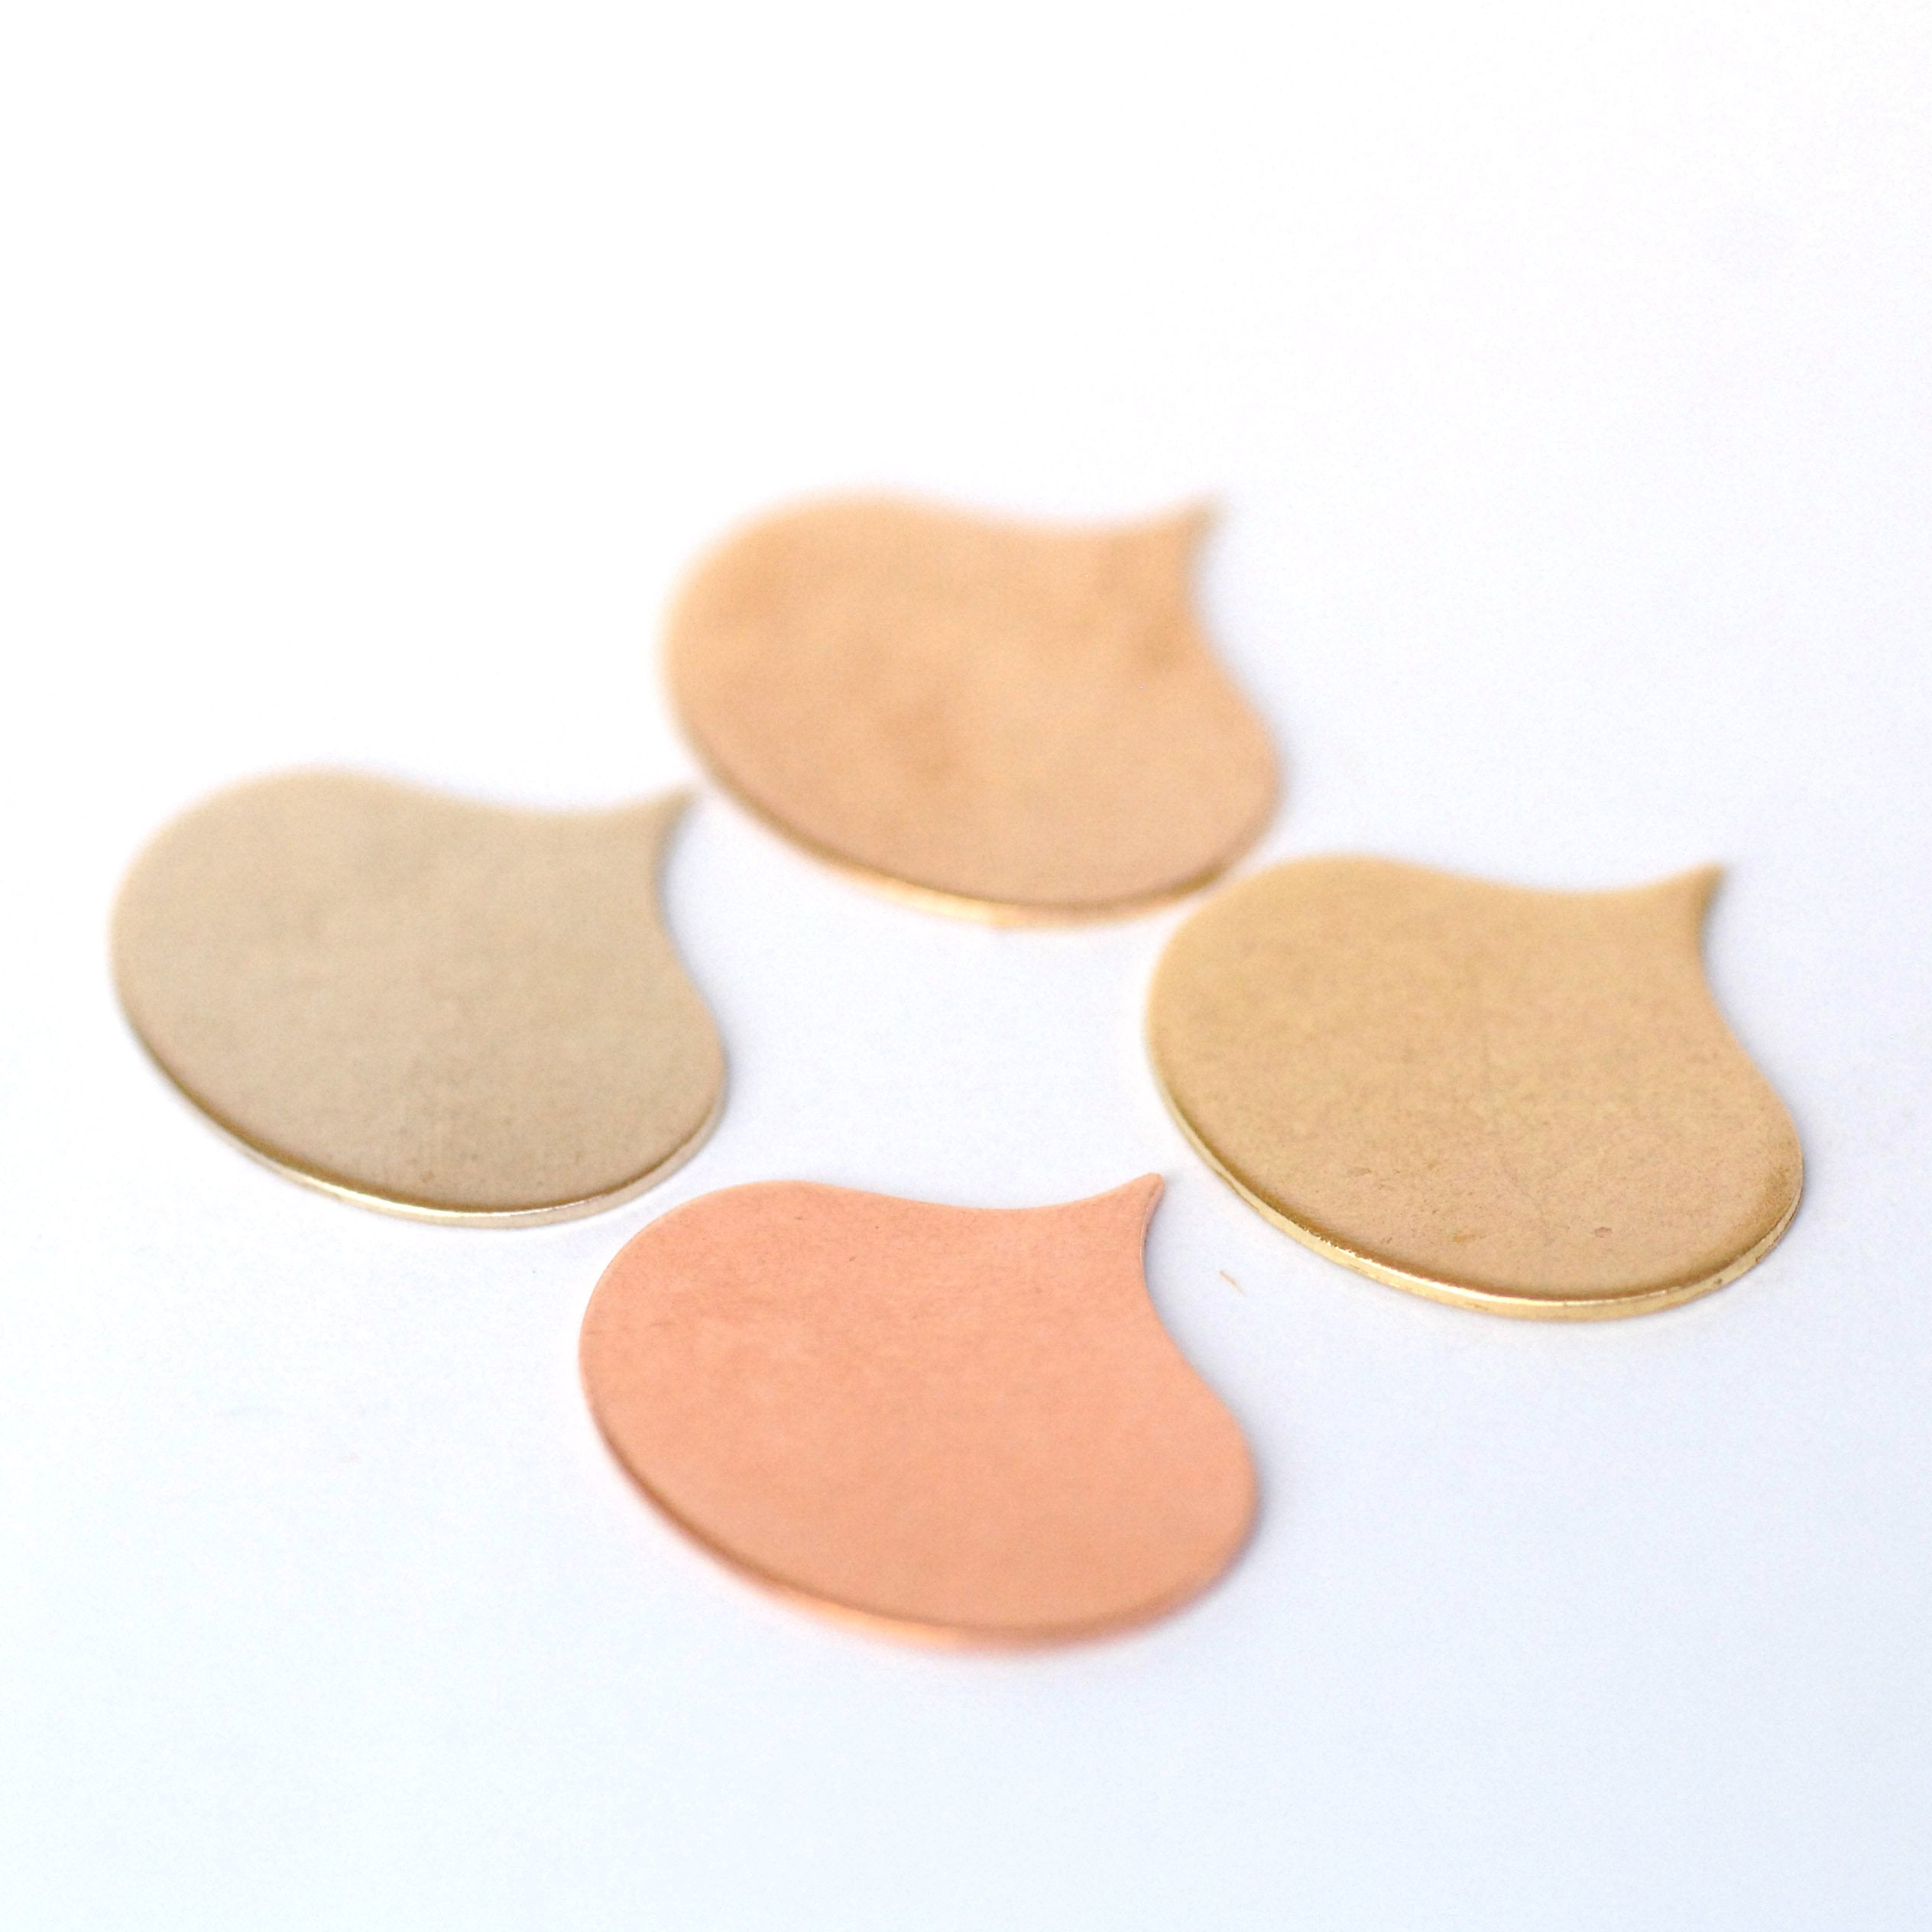 Cloud Teardrops 21mm x 19mm 24g, 22g, or 20g Blank shapes for enameling and jewelry making